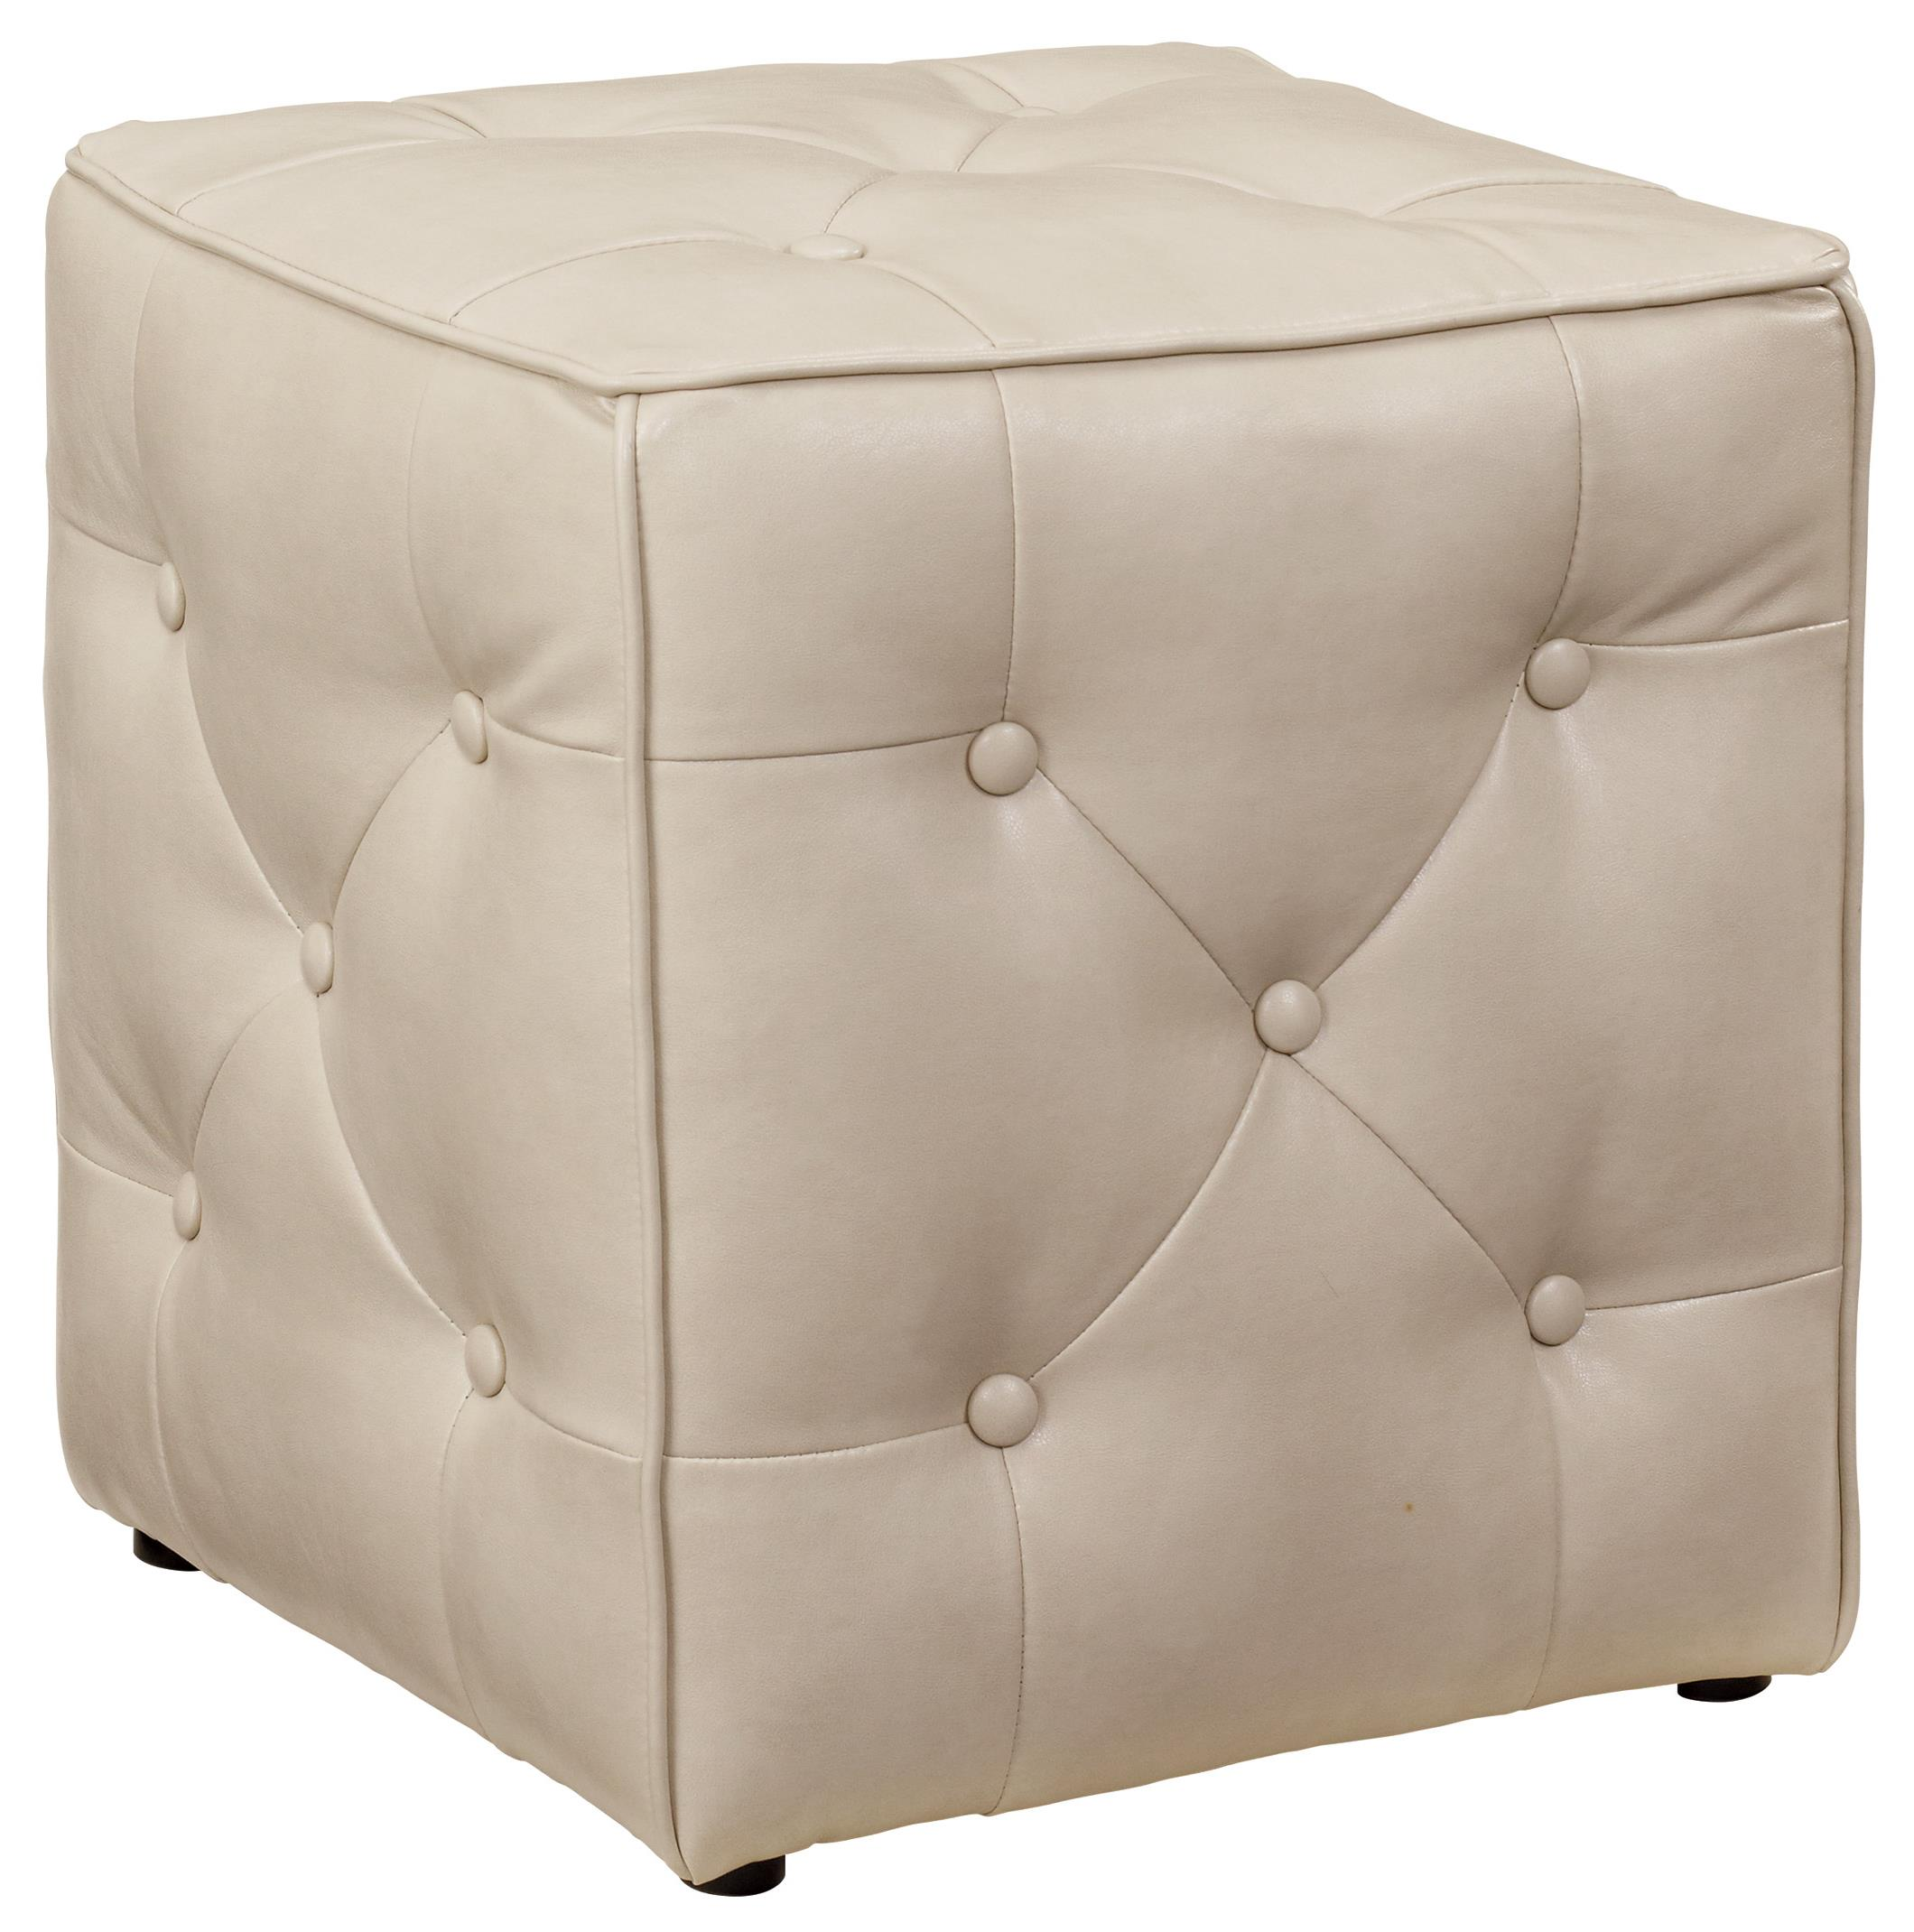 Signature Design by Ashley Jive Accent Ottoman - Item Number: 4740113